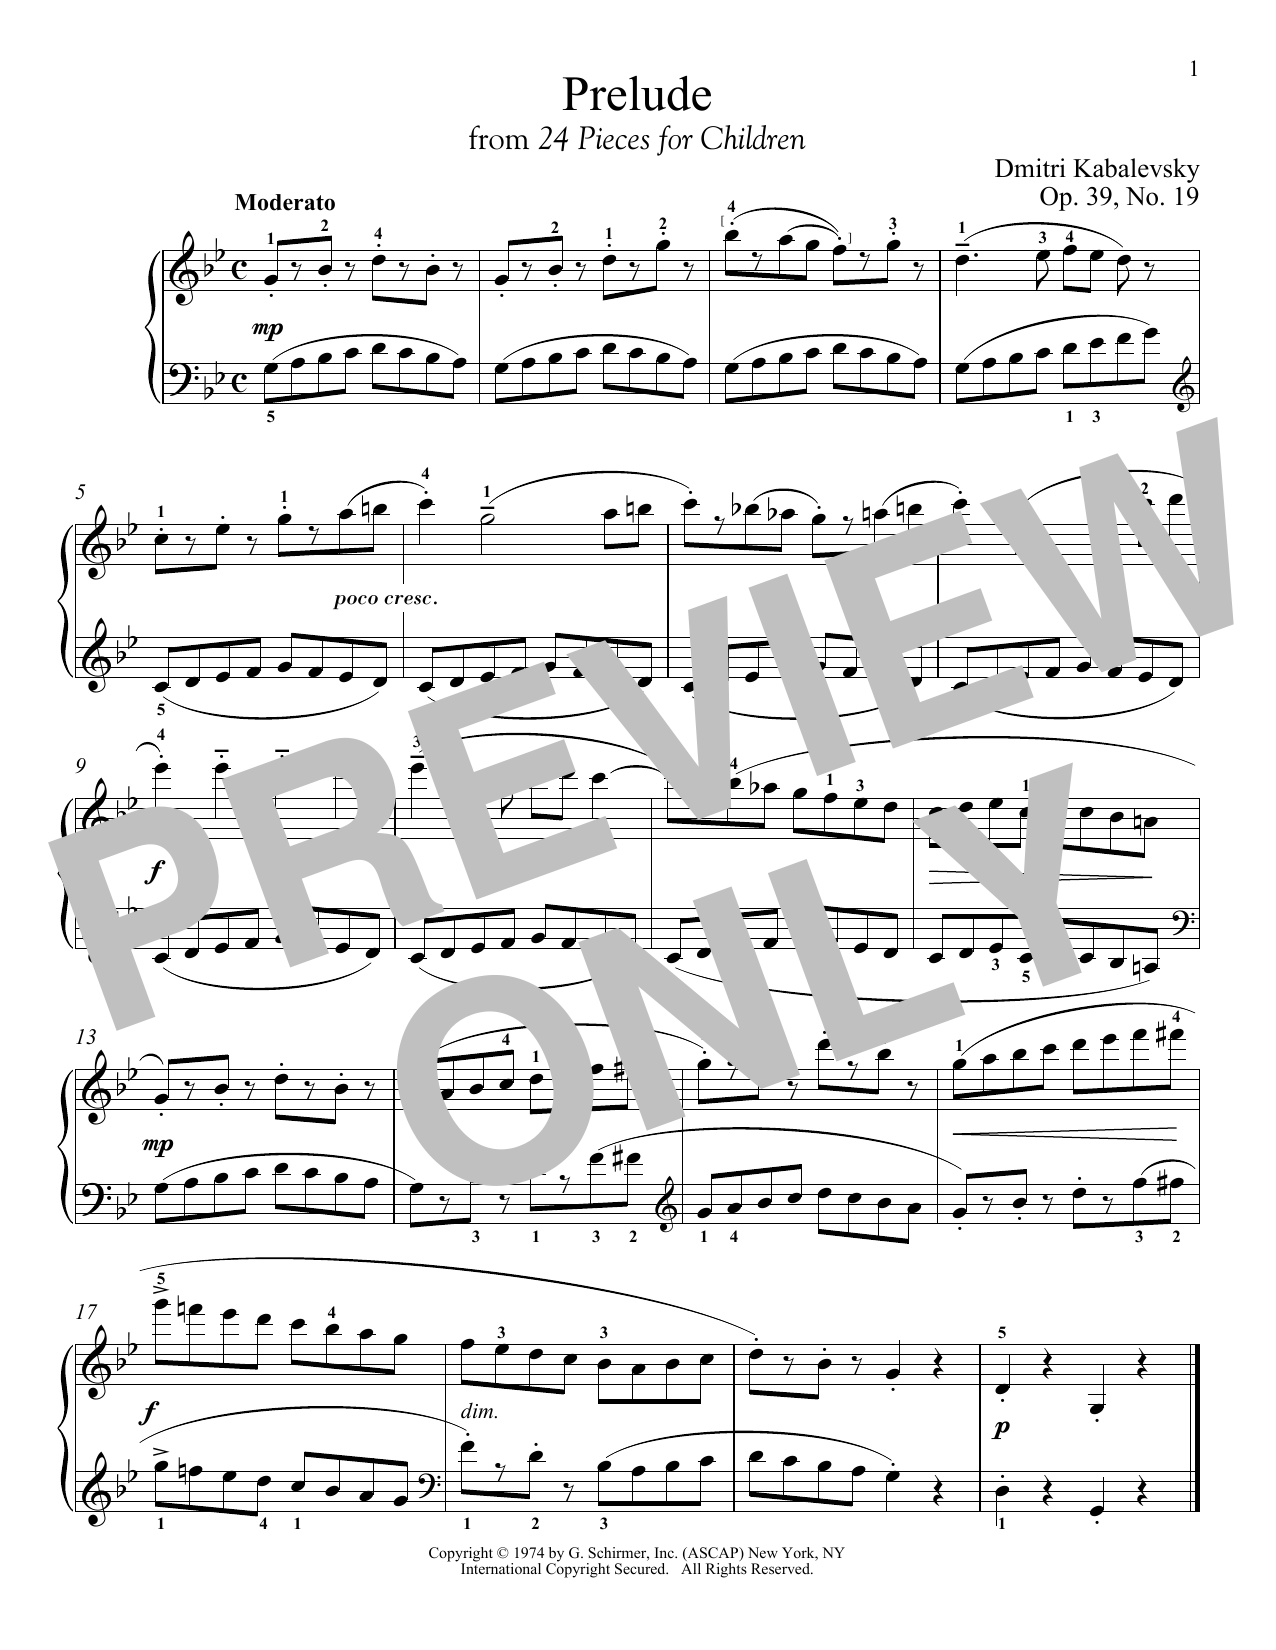 Dmitri Kabalevsky Prelude, Op. 39, No. 19 sheet music notes and chords